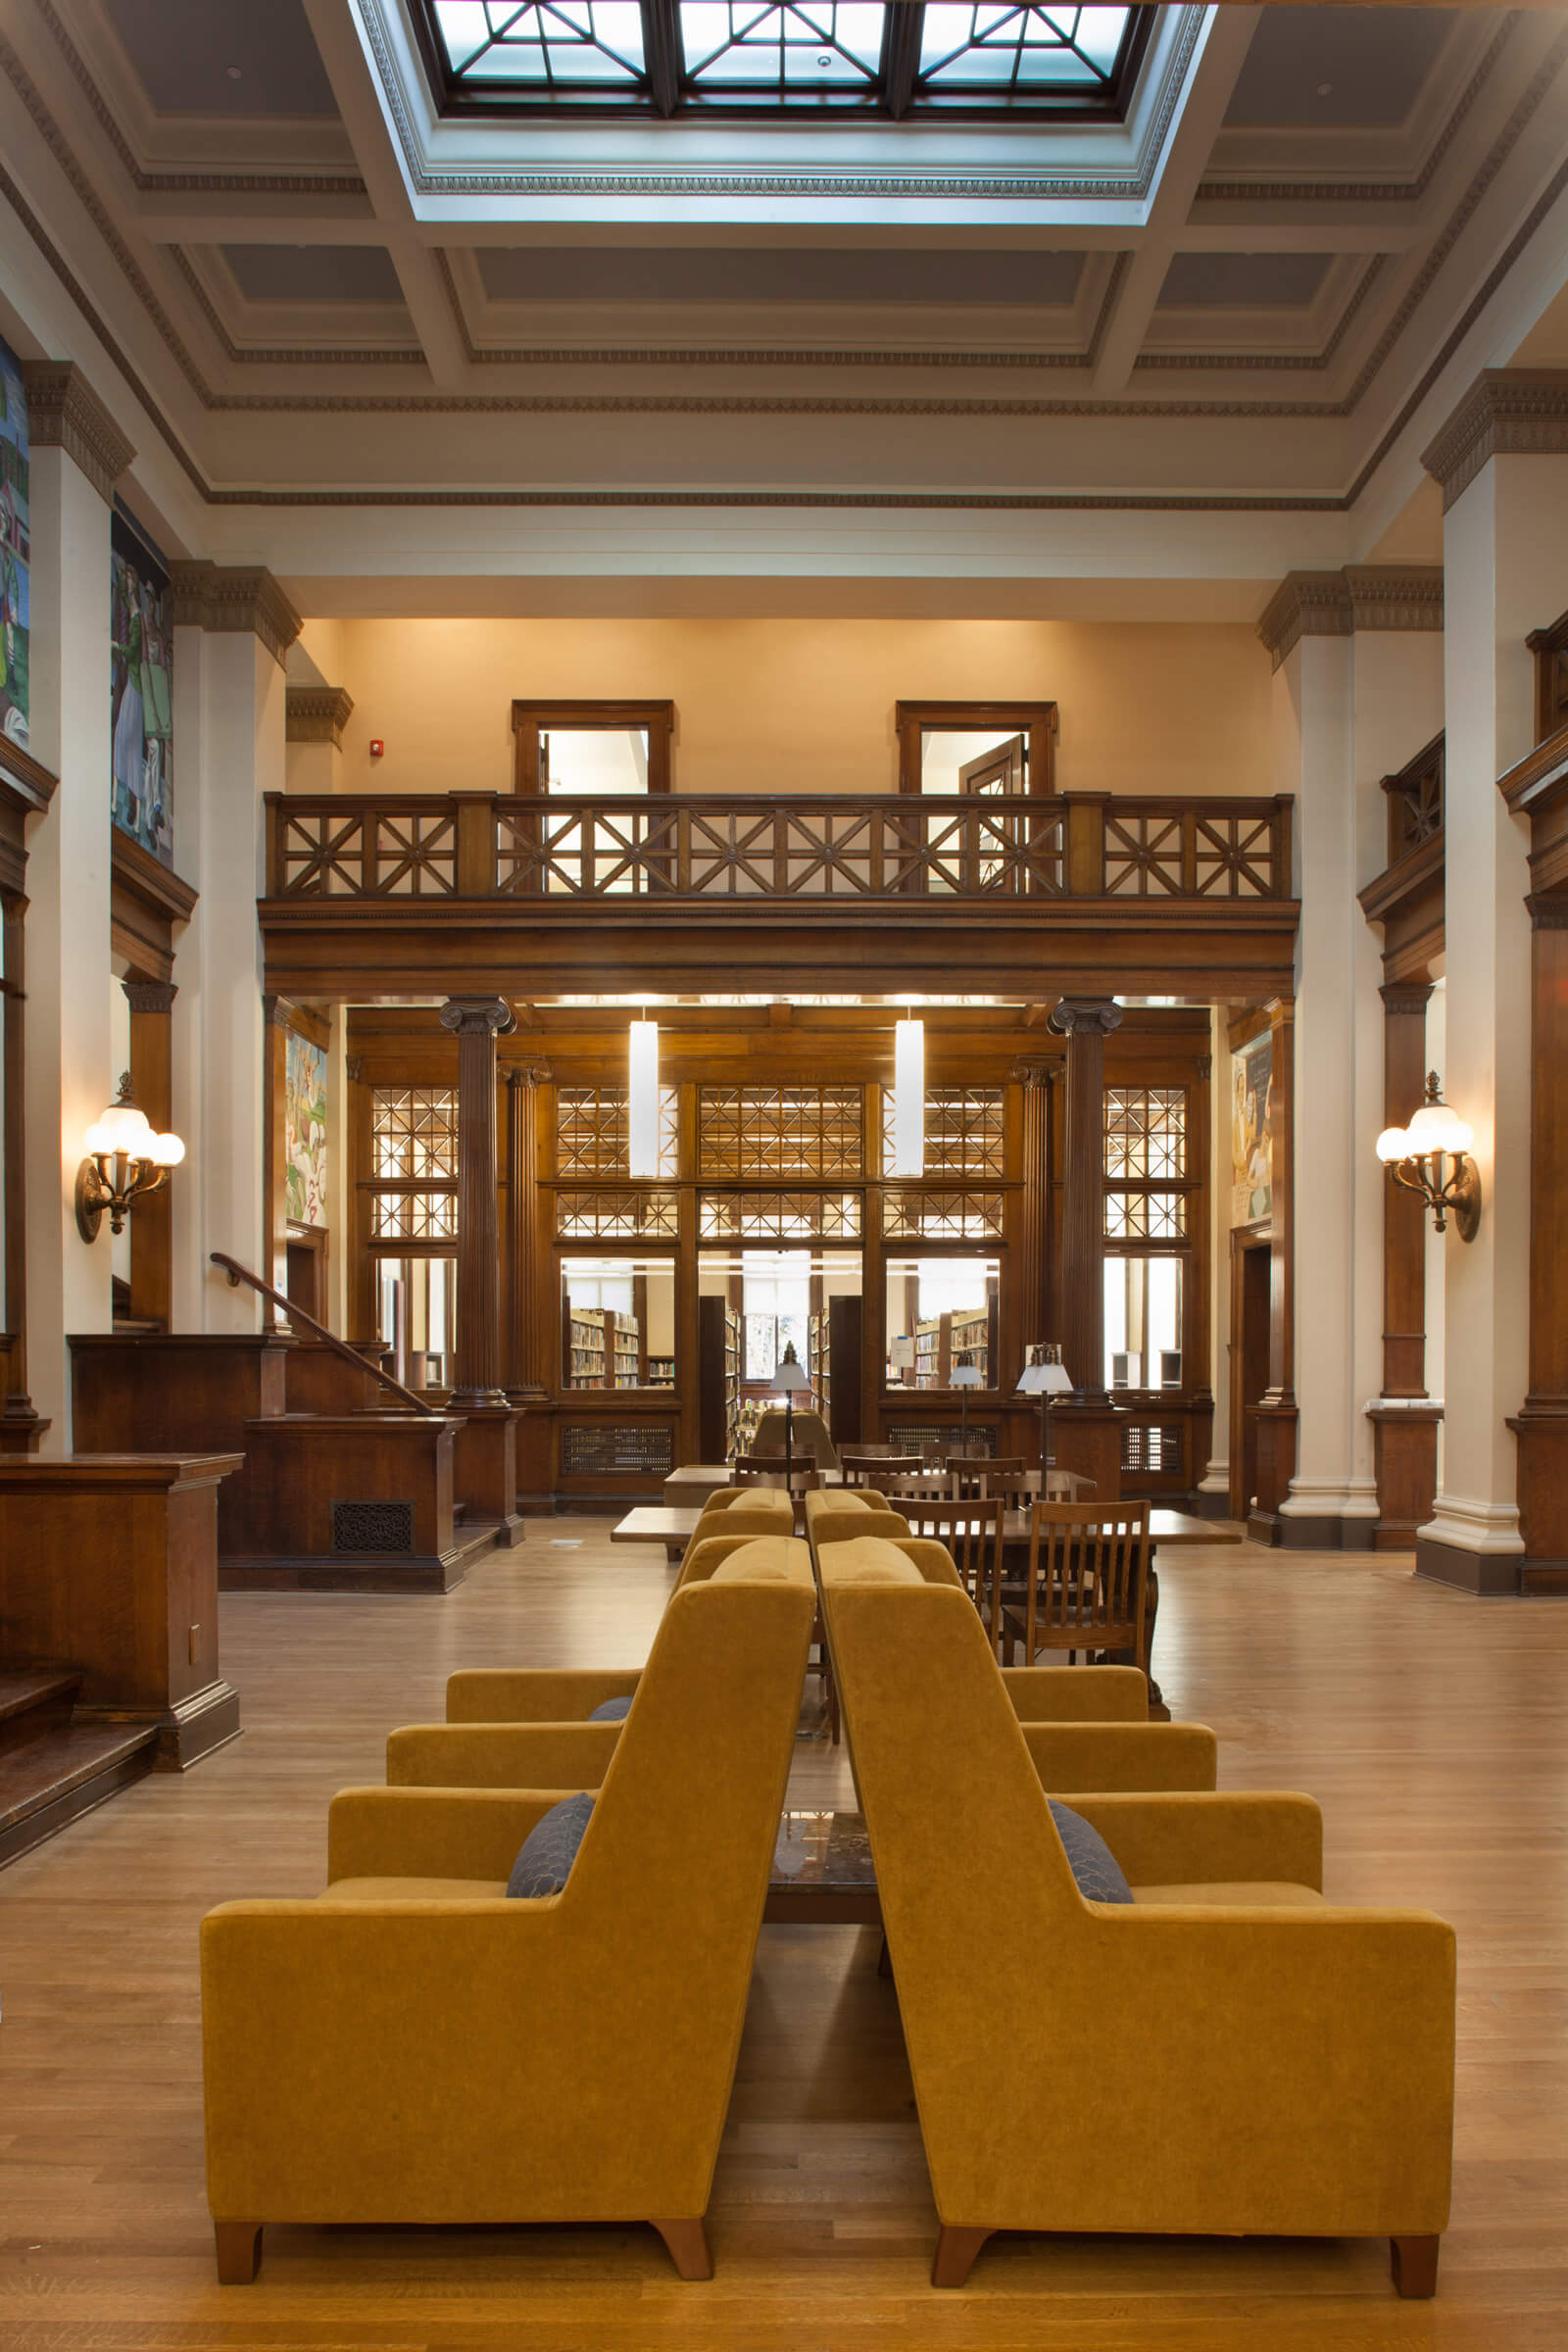 Historic double-height atrium of the Holyoke Public Library with yellow seating in the foreground and carrels in the background.